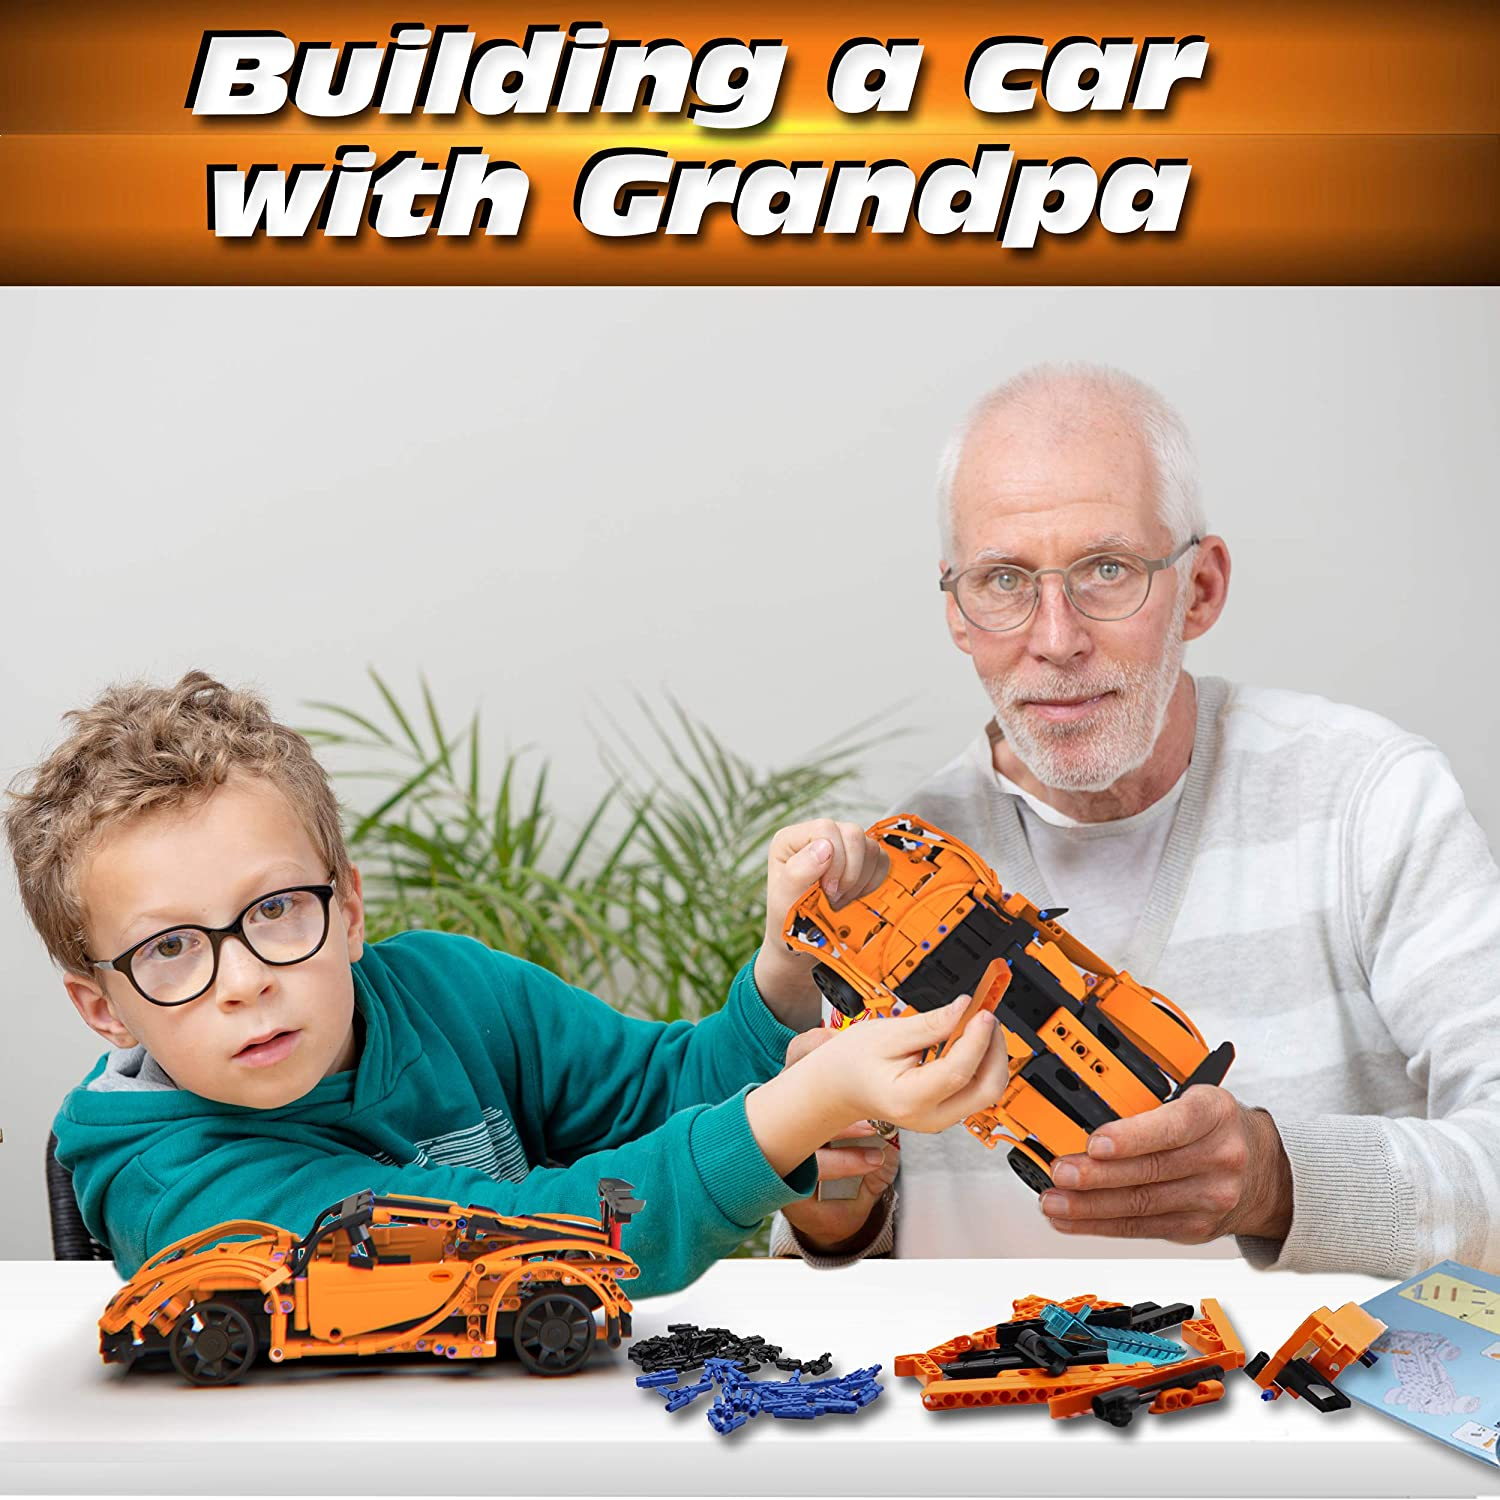 Birthday Toy Gift for 8 421pc Stem Building Sets for Boys 8-12 10 STEM Remote Control Car Building Kit 9 11 WisePlay Build Your Own RC Car Kit for Kids and 12 Year Old Boys